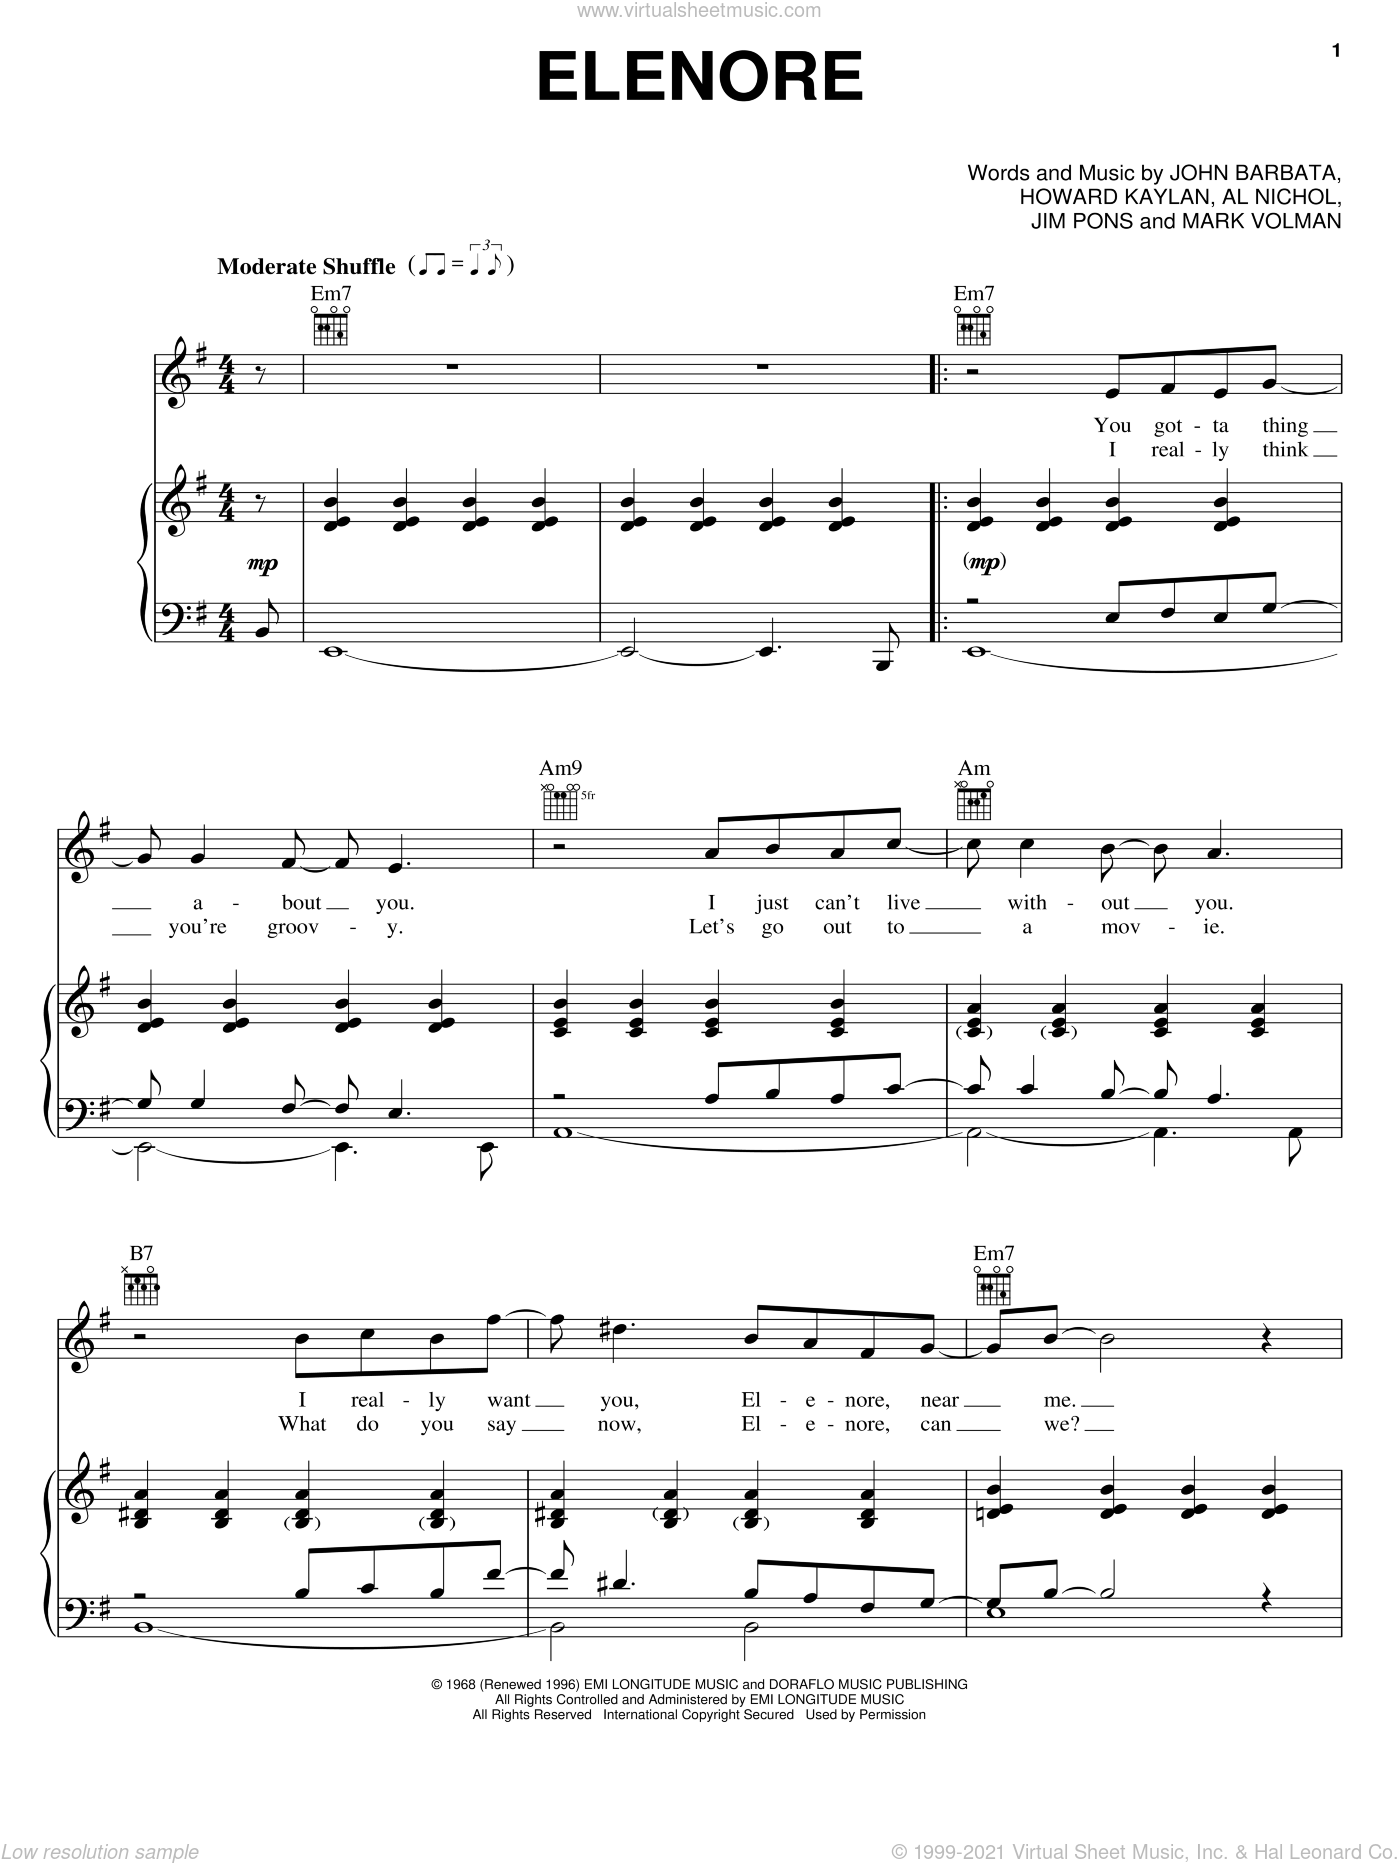 Elenore sheet music for voice, piano or guitar by Jim Pons